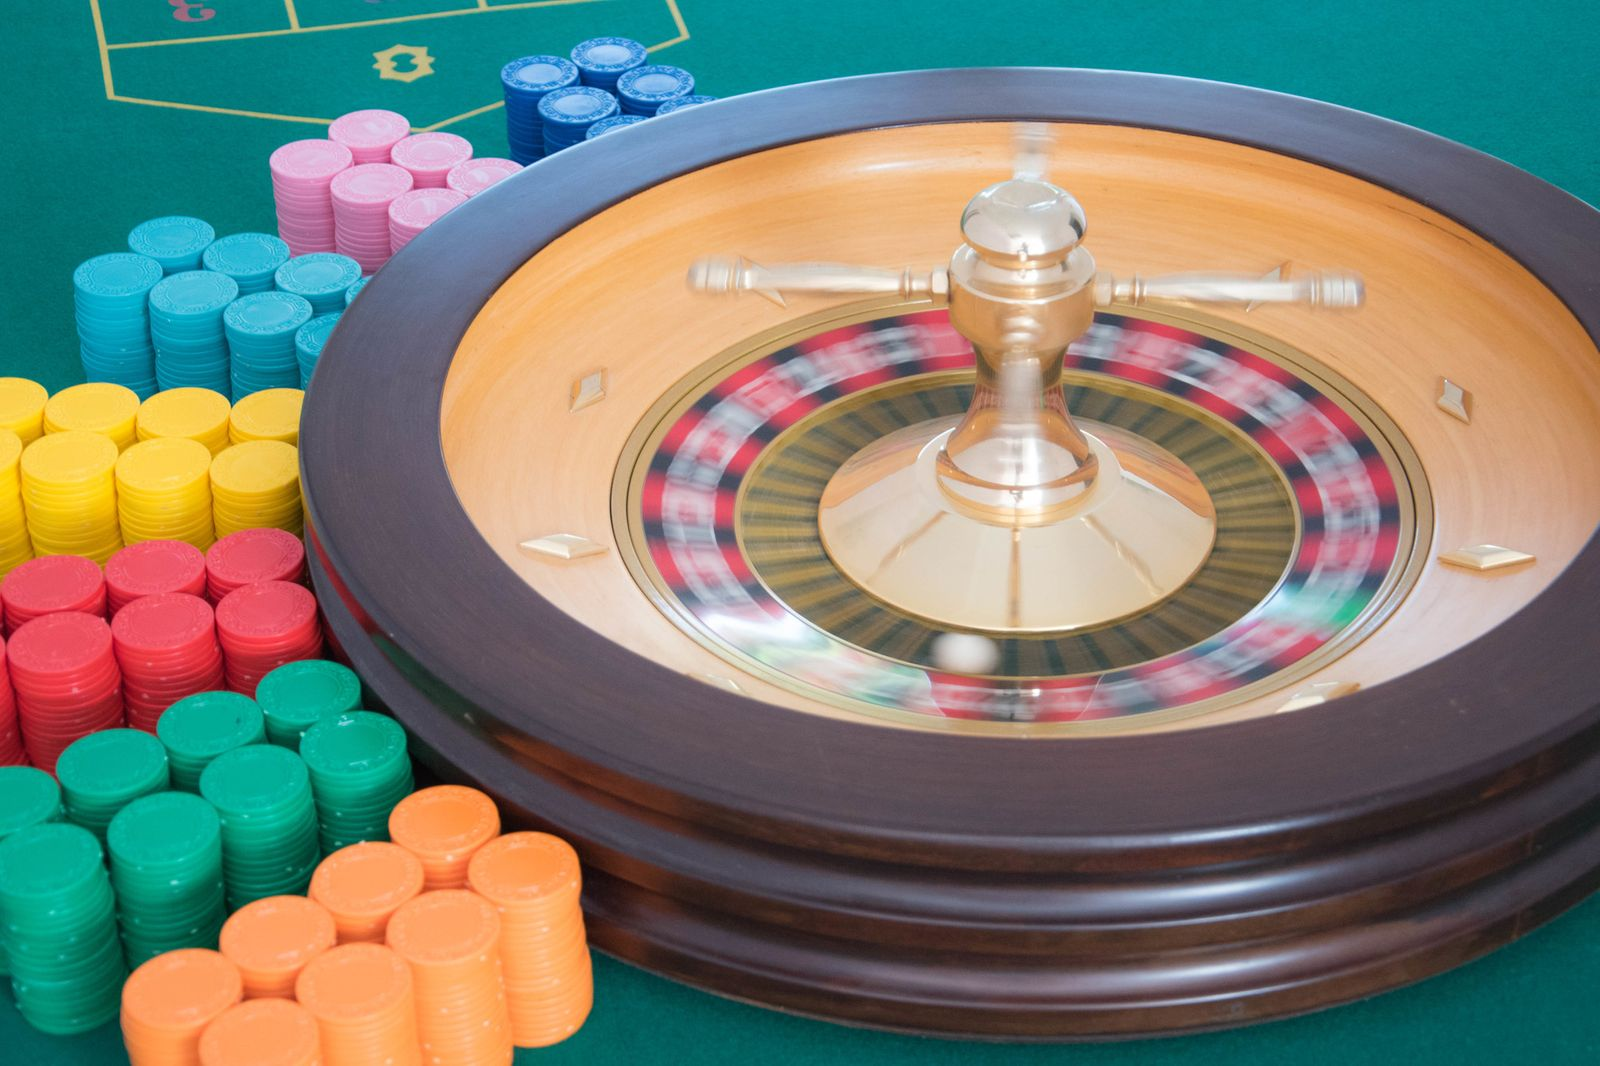 Intrattenimento a tema casinò per eventi di beneficenza